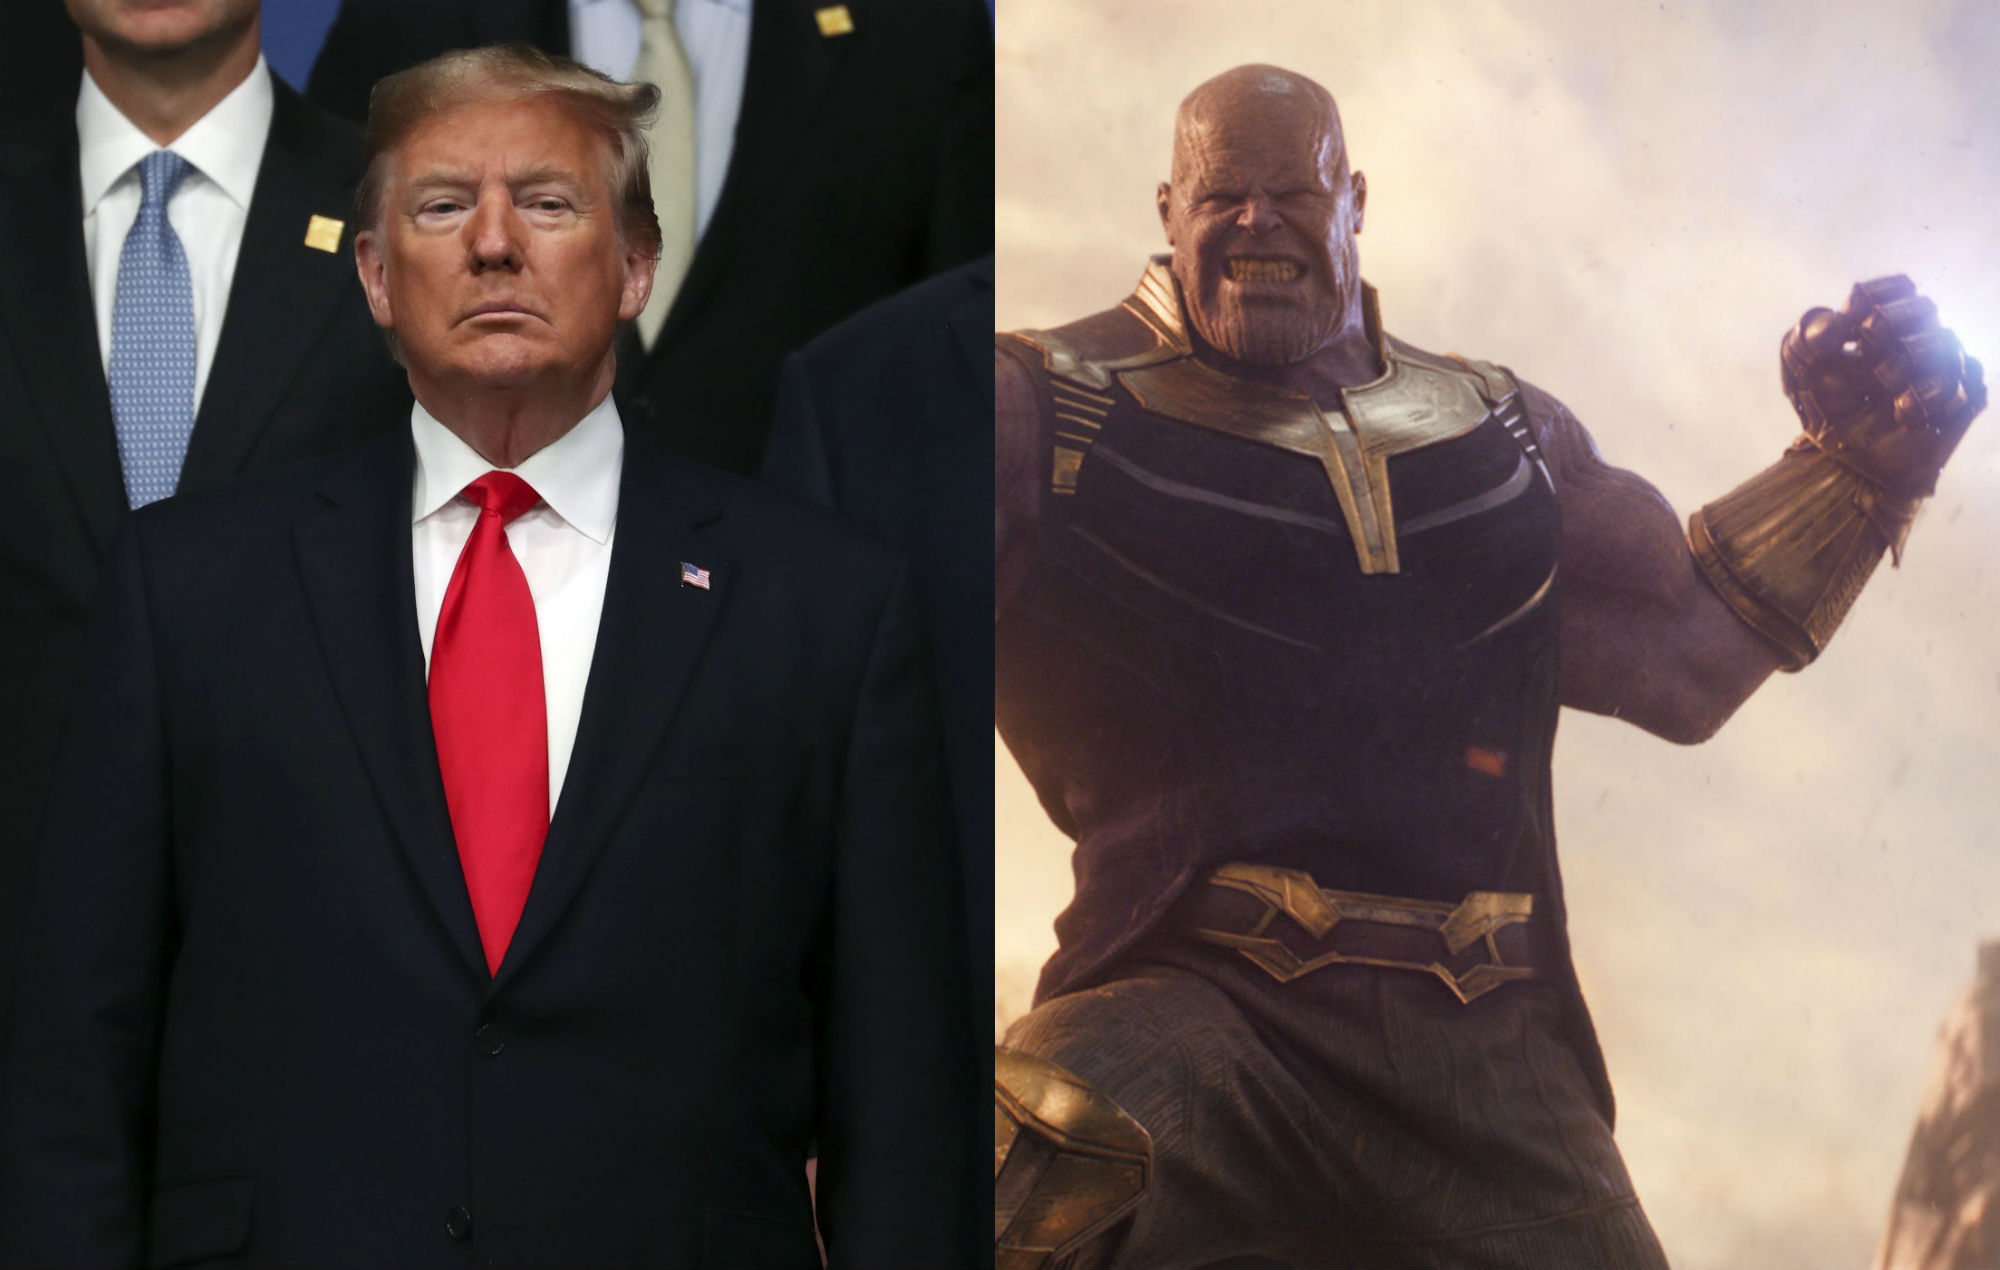 Donald Trump's campaign team portray President as Avengers